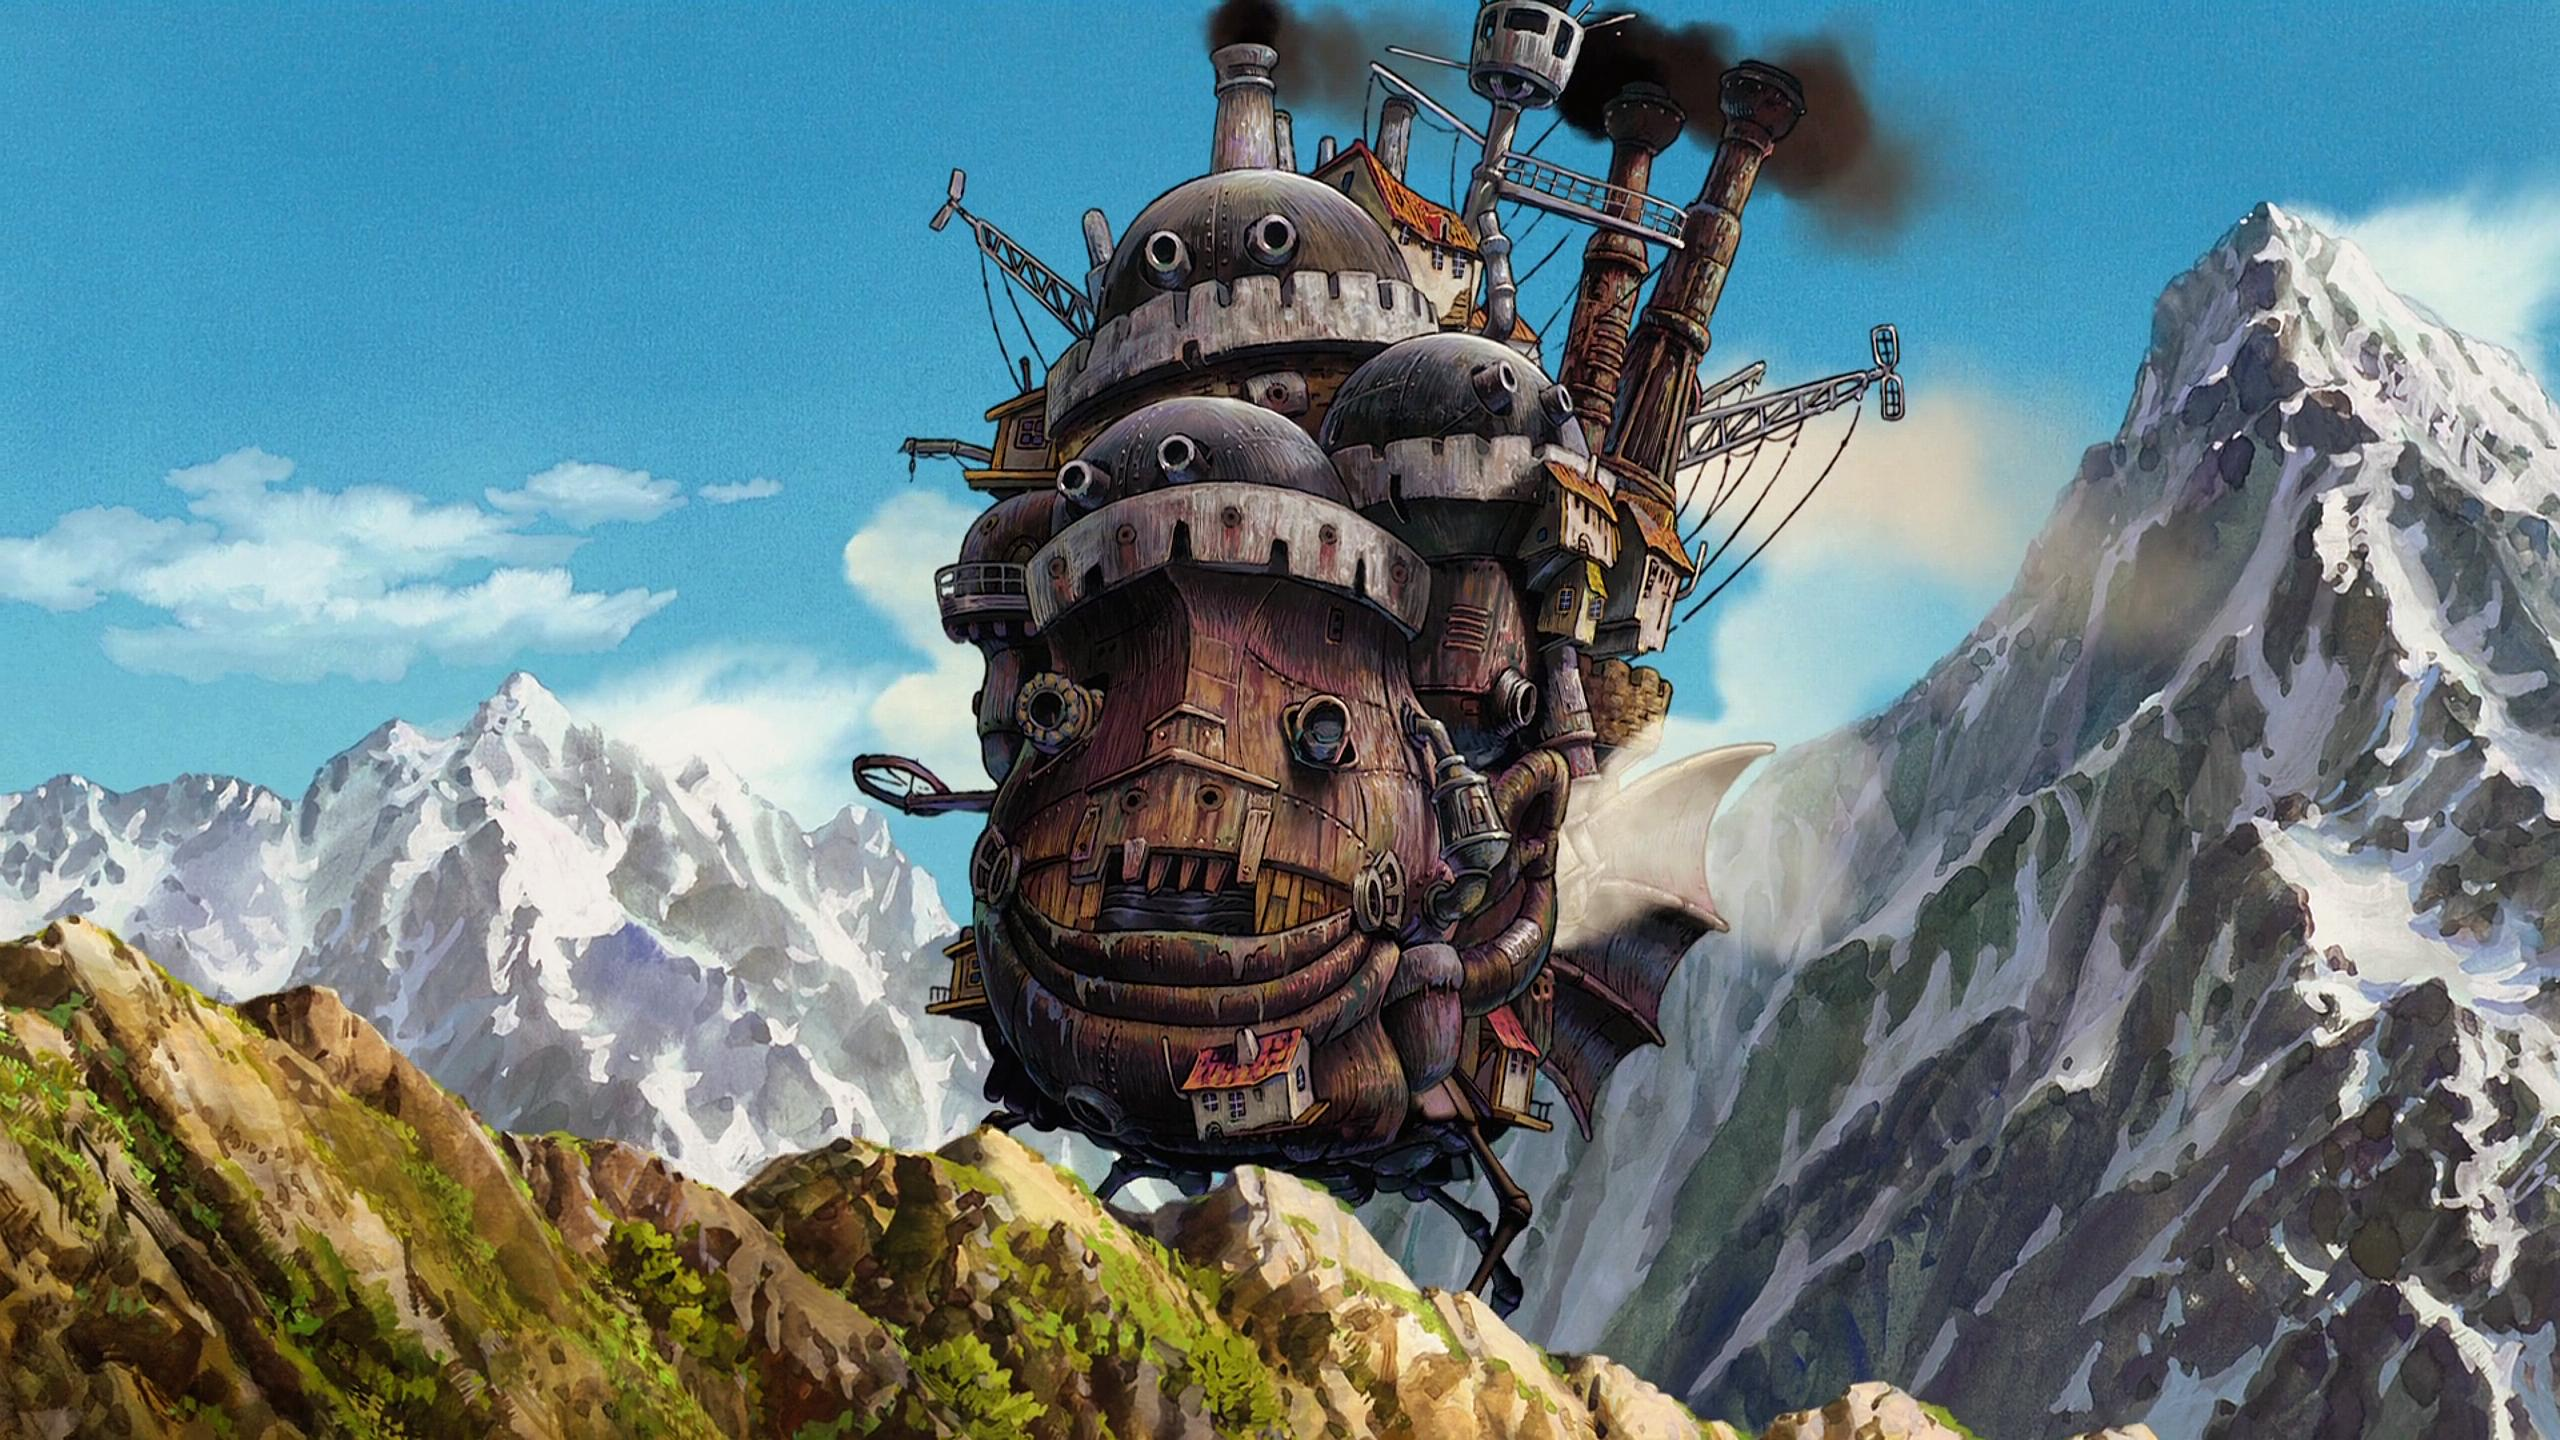 Howls moving castle wallpaper